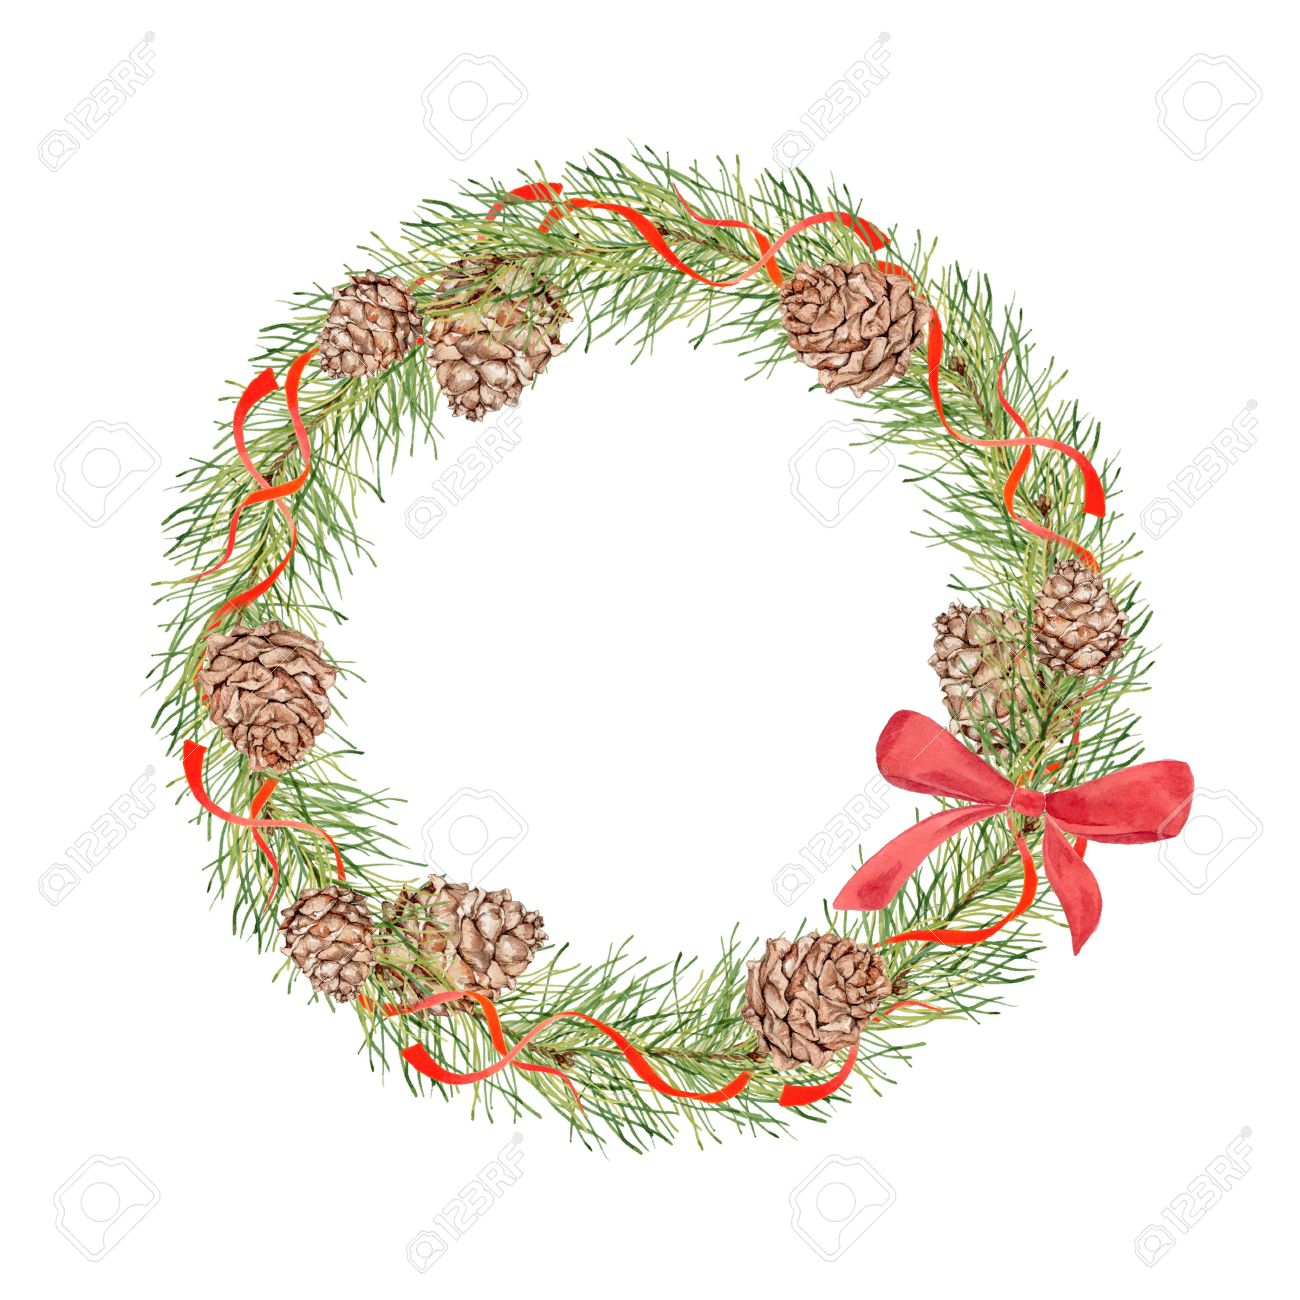 1300x1300 Christmas Wreath With Pine Cones, Pine Branches And Red Ribbons